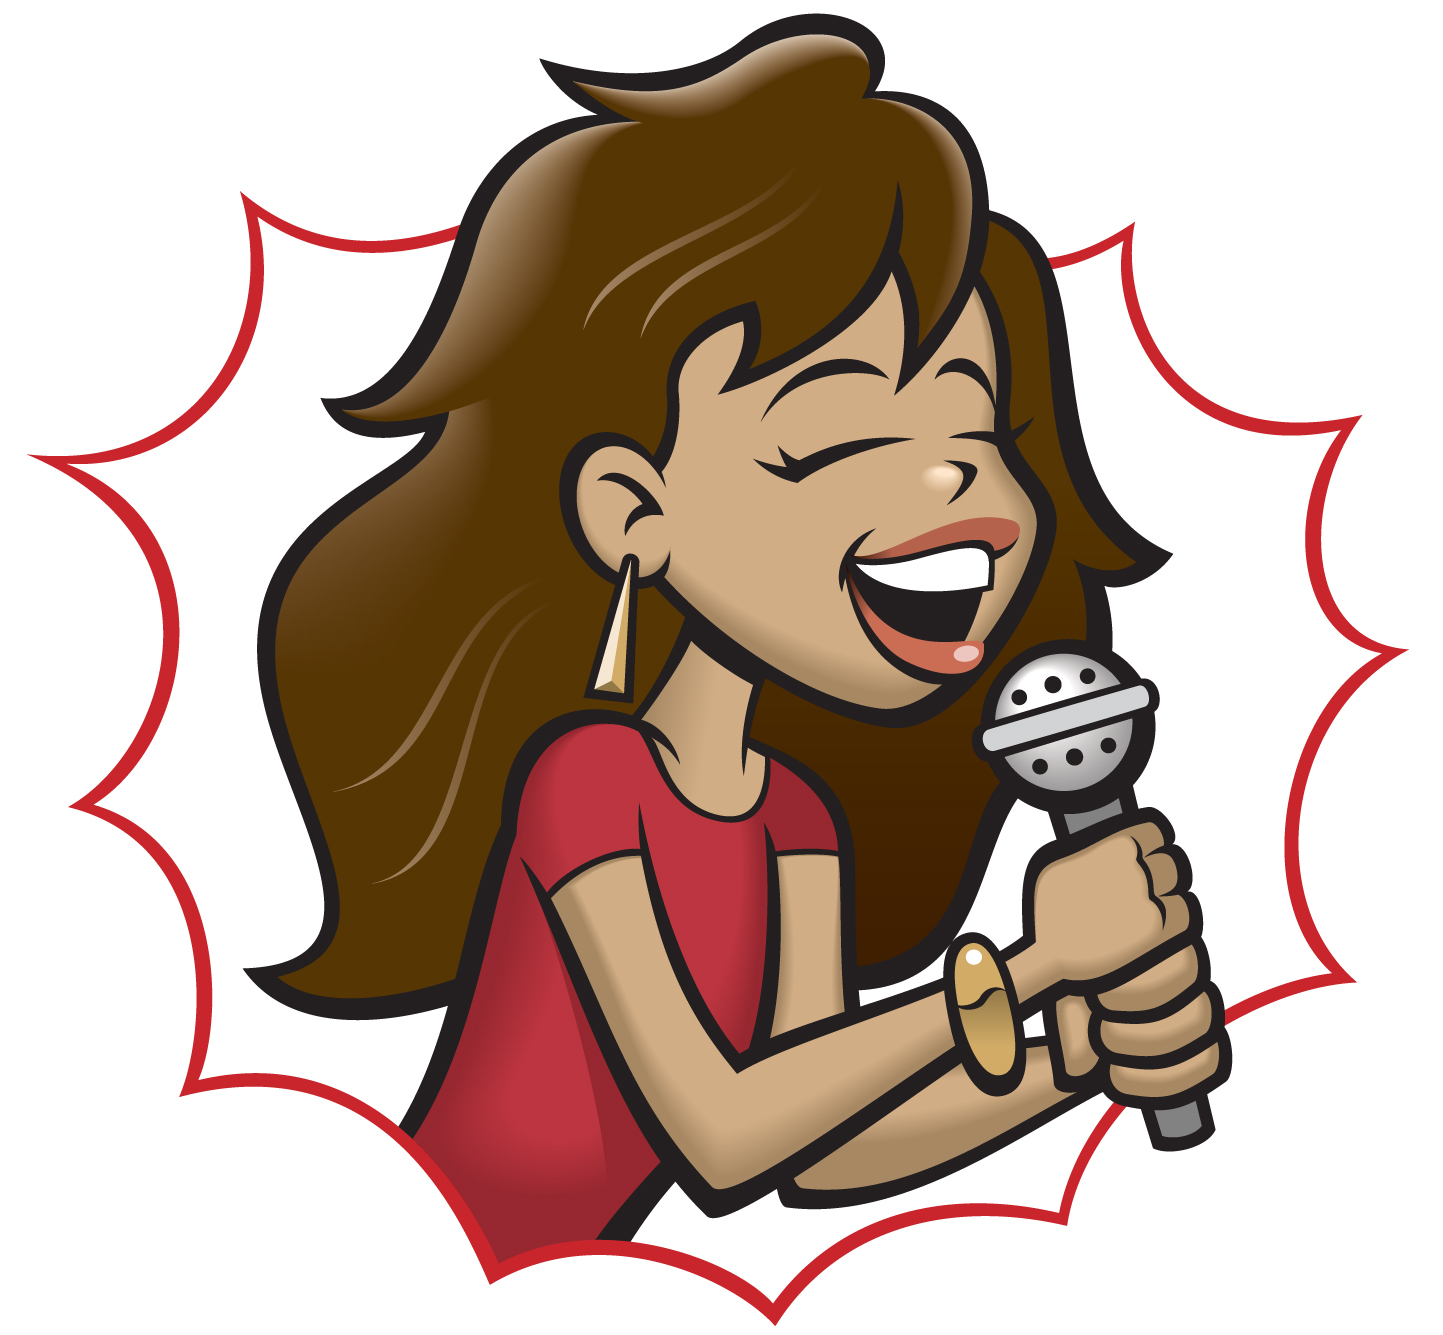 Singer clipart singing contest Clip music collection Art Savoronmorehead